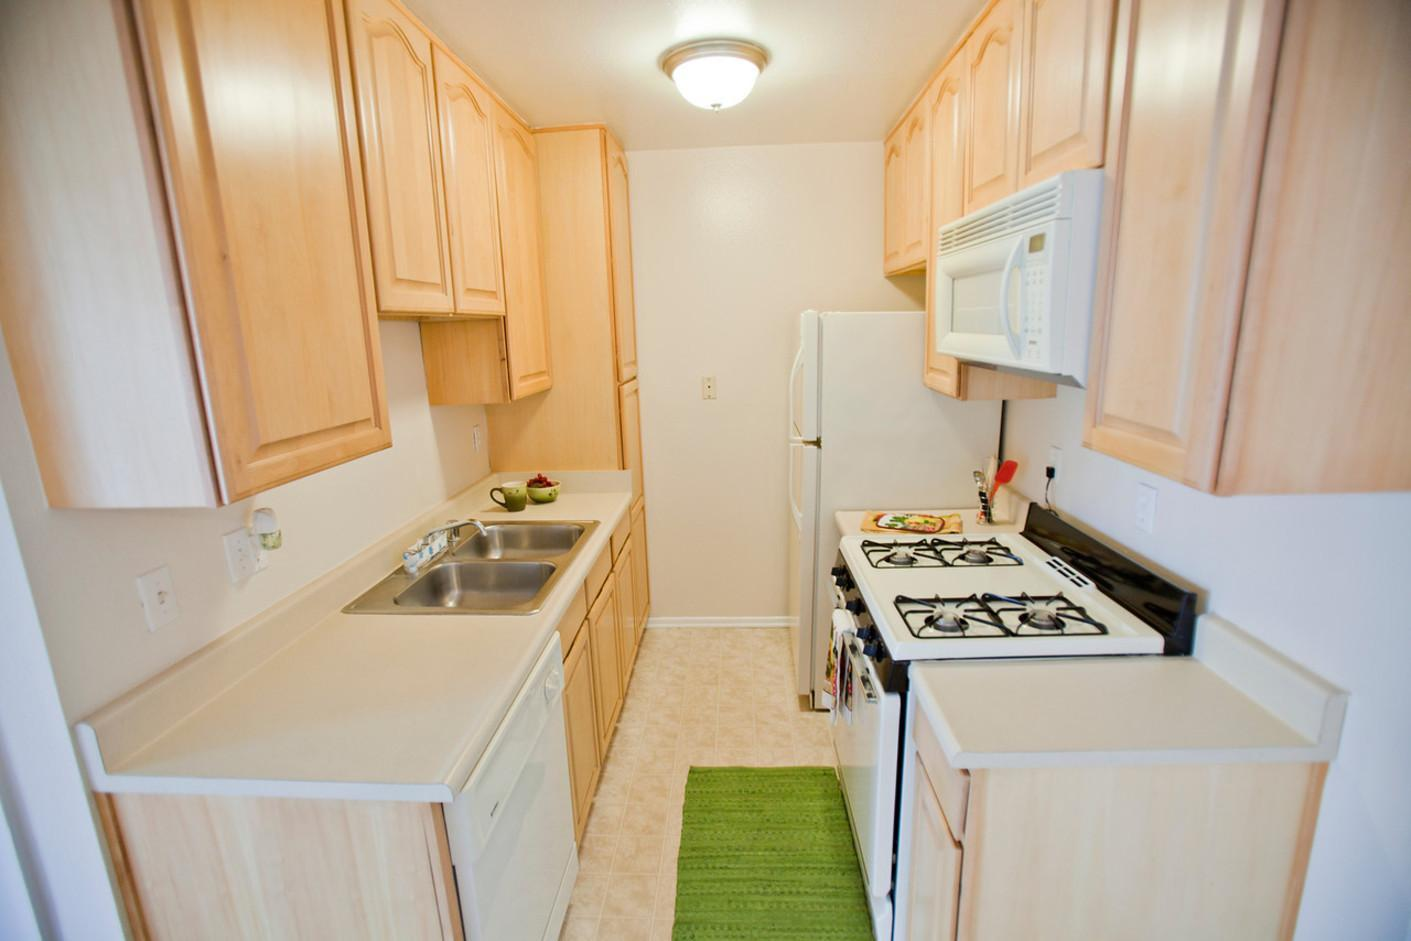 125 W Olive Ave #113, Monrovia, CA - $1,855 USD/ month